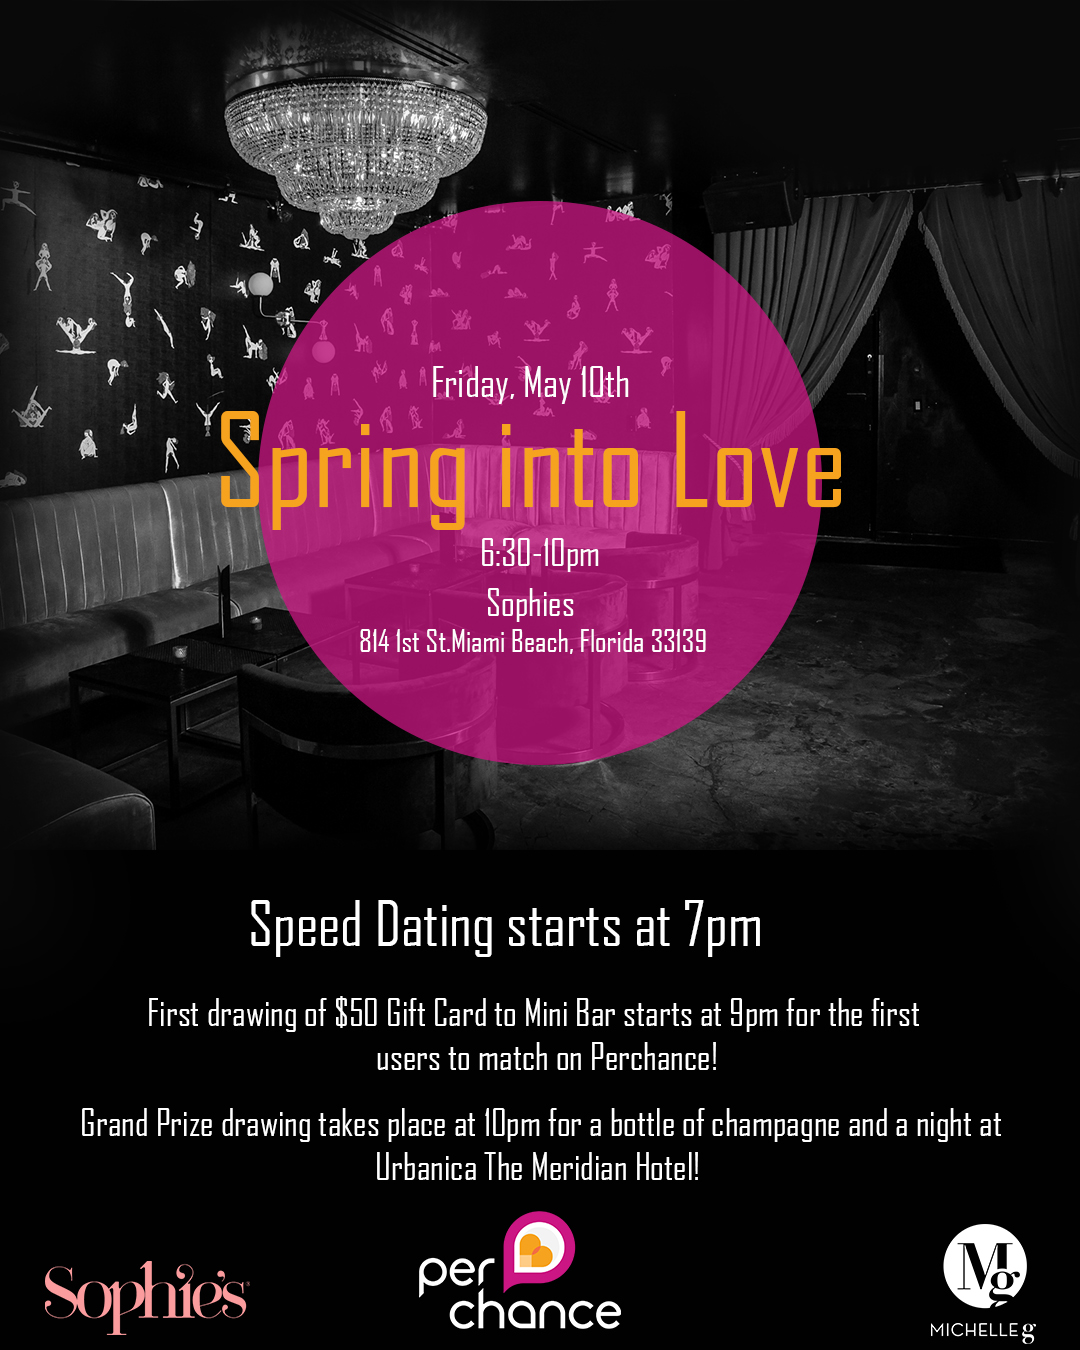 Speed dating flyers